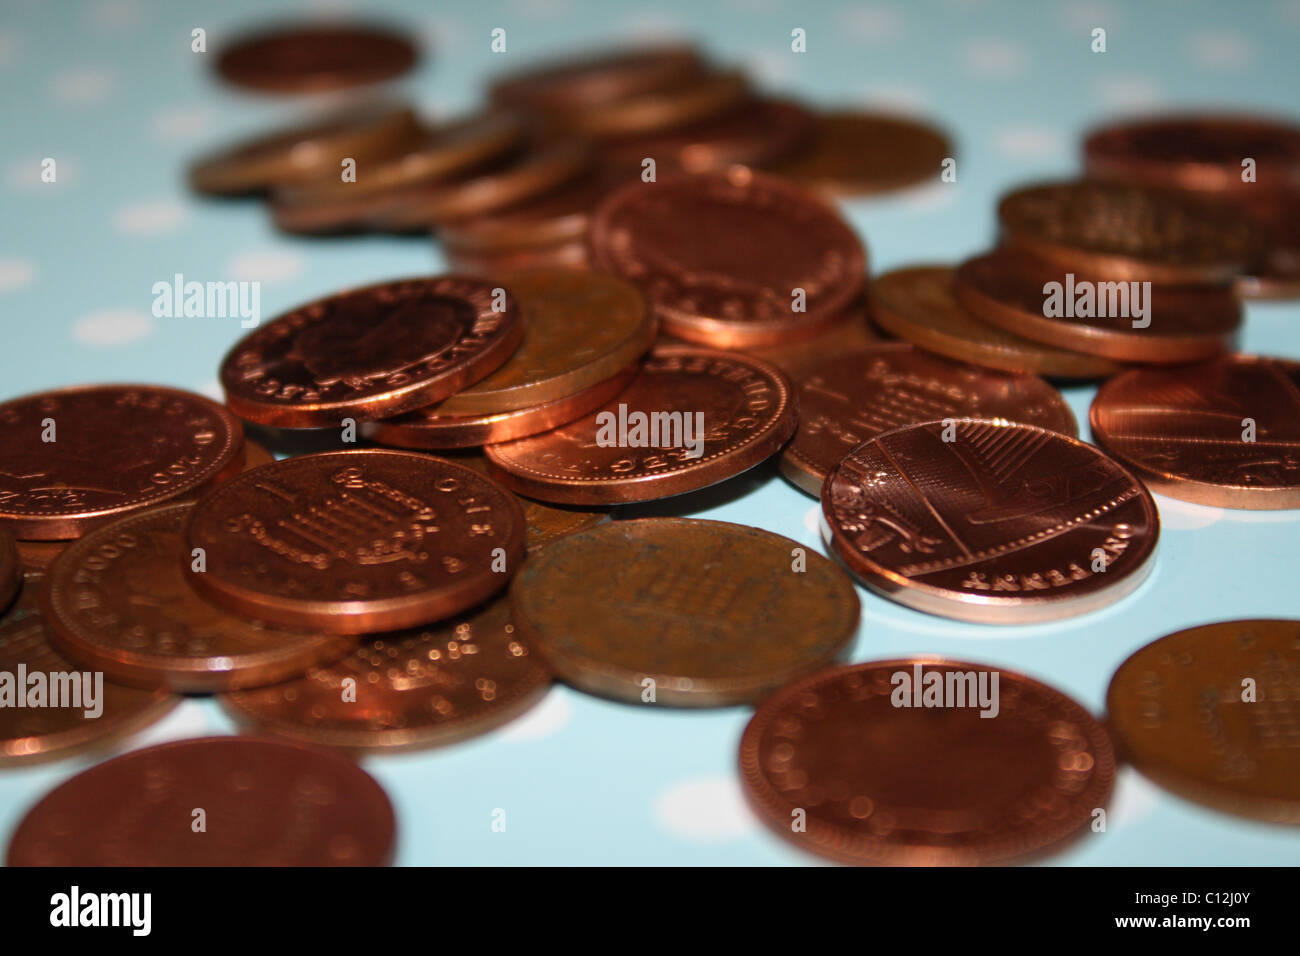 Pennies in a Pile - Stock Image